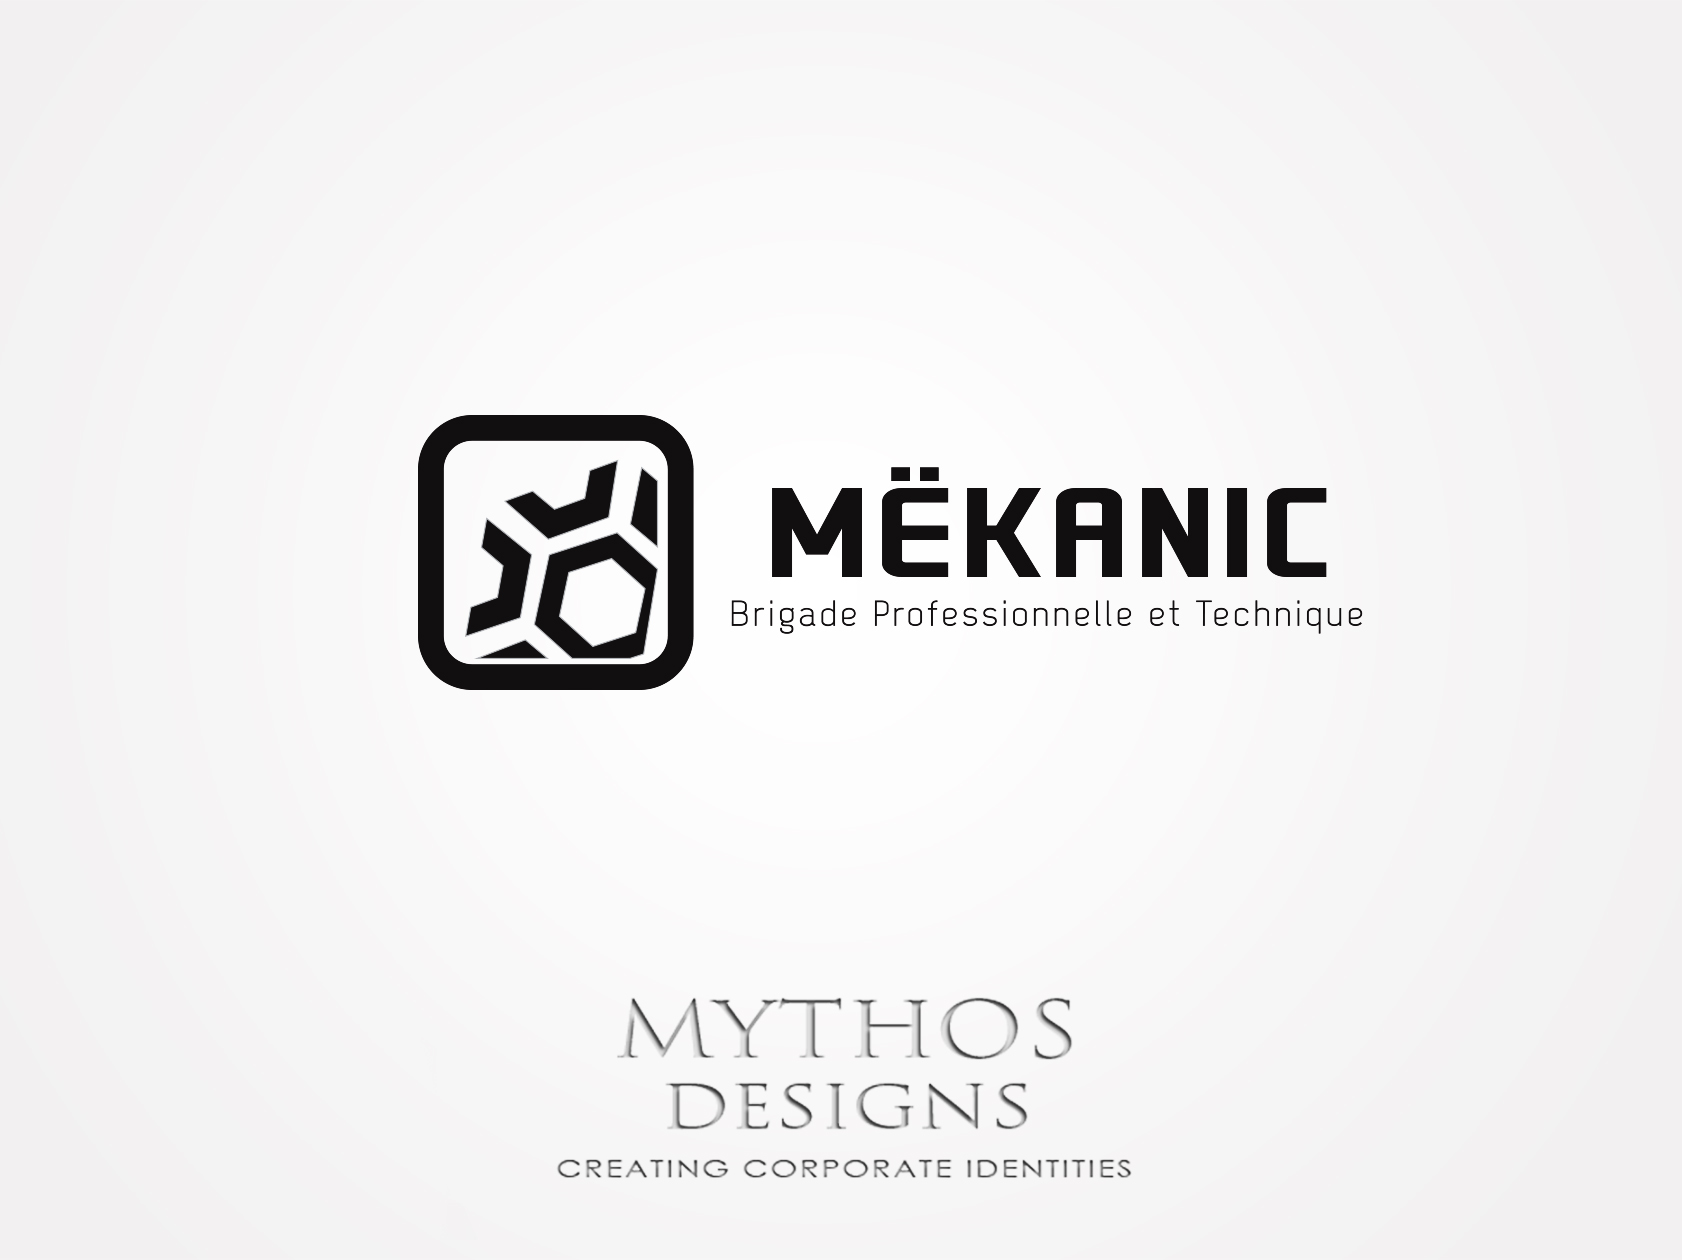 Logo Design by Mythos Designs - Entry No. 338 in the Logo Design Contest Creative Logo Design for MËKANIC - Professional and technical squad.